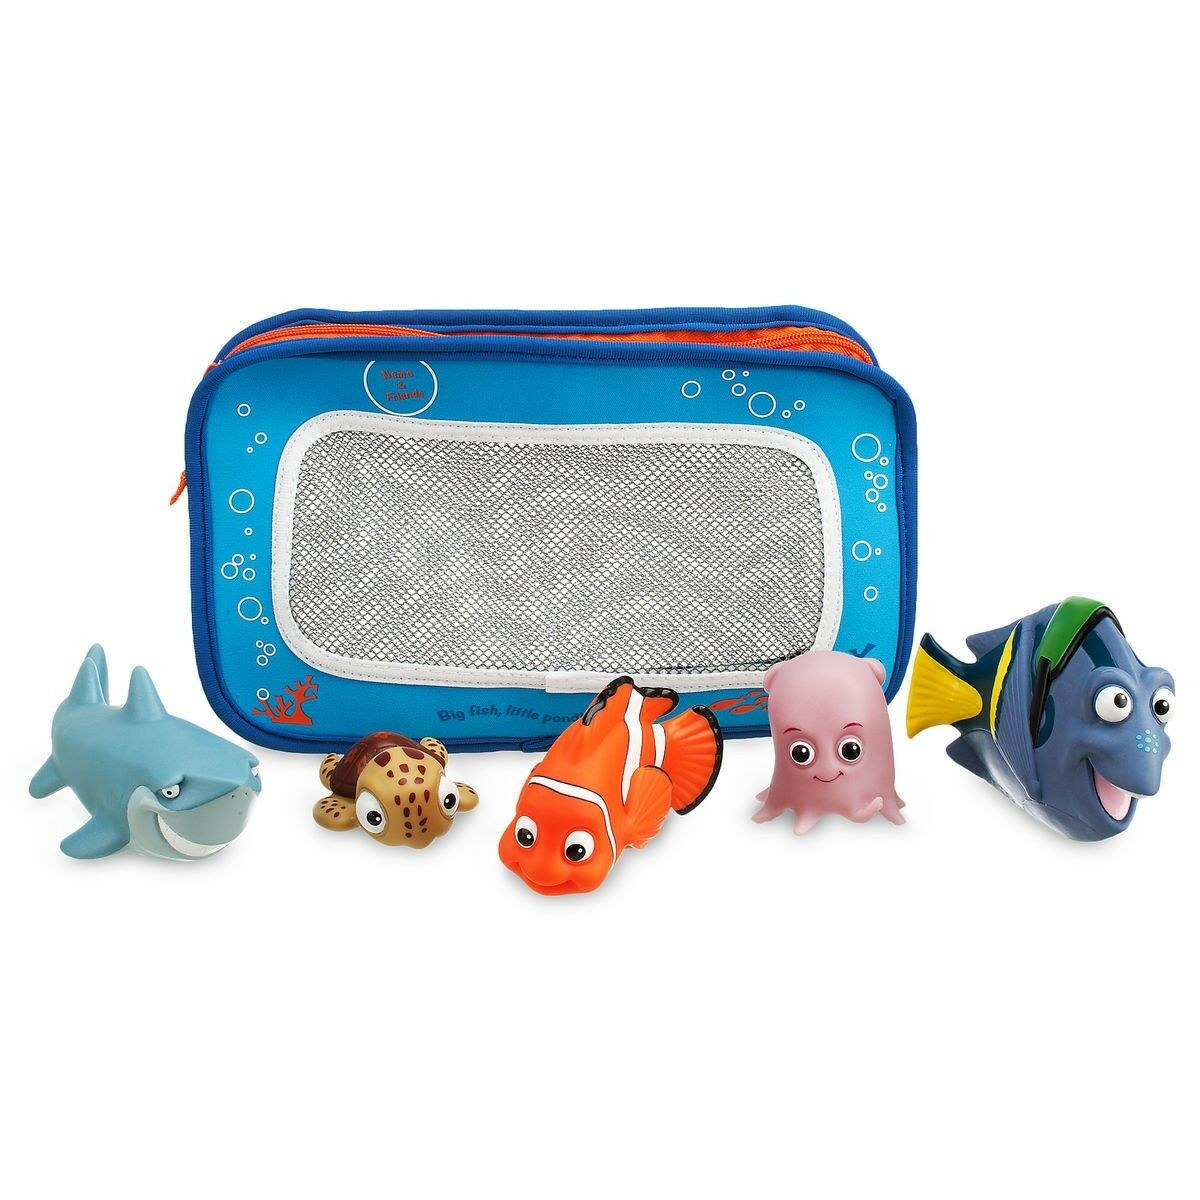 NEW Disney Finding Nemo Bath Toys for Baby FREE SHIPPING